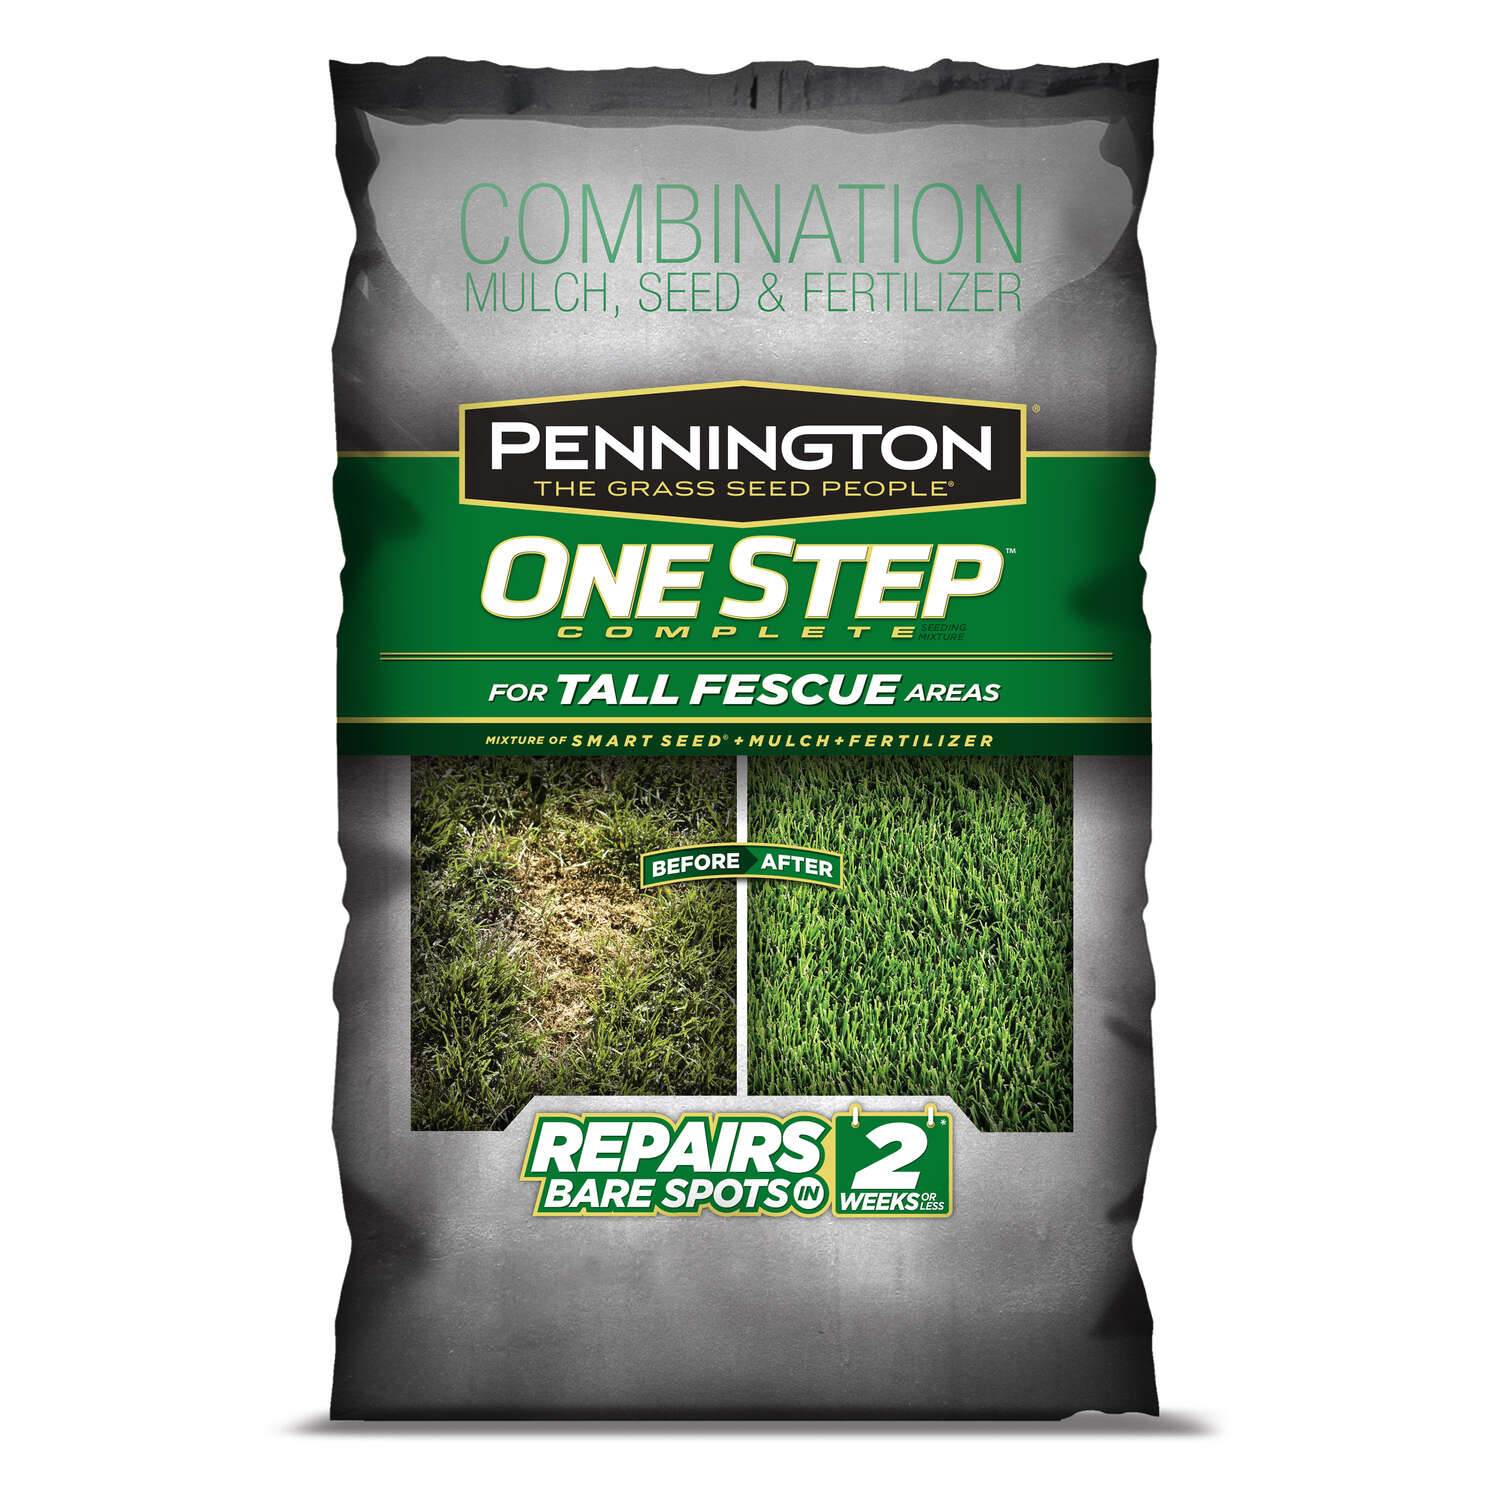 Pennington One Step Complete Tall Fescue Dense Shade Seed, Mulch & Fertilizer 8.3 lb.